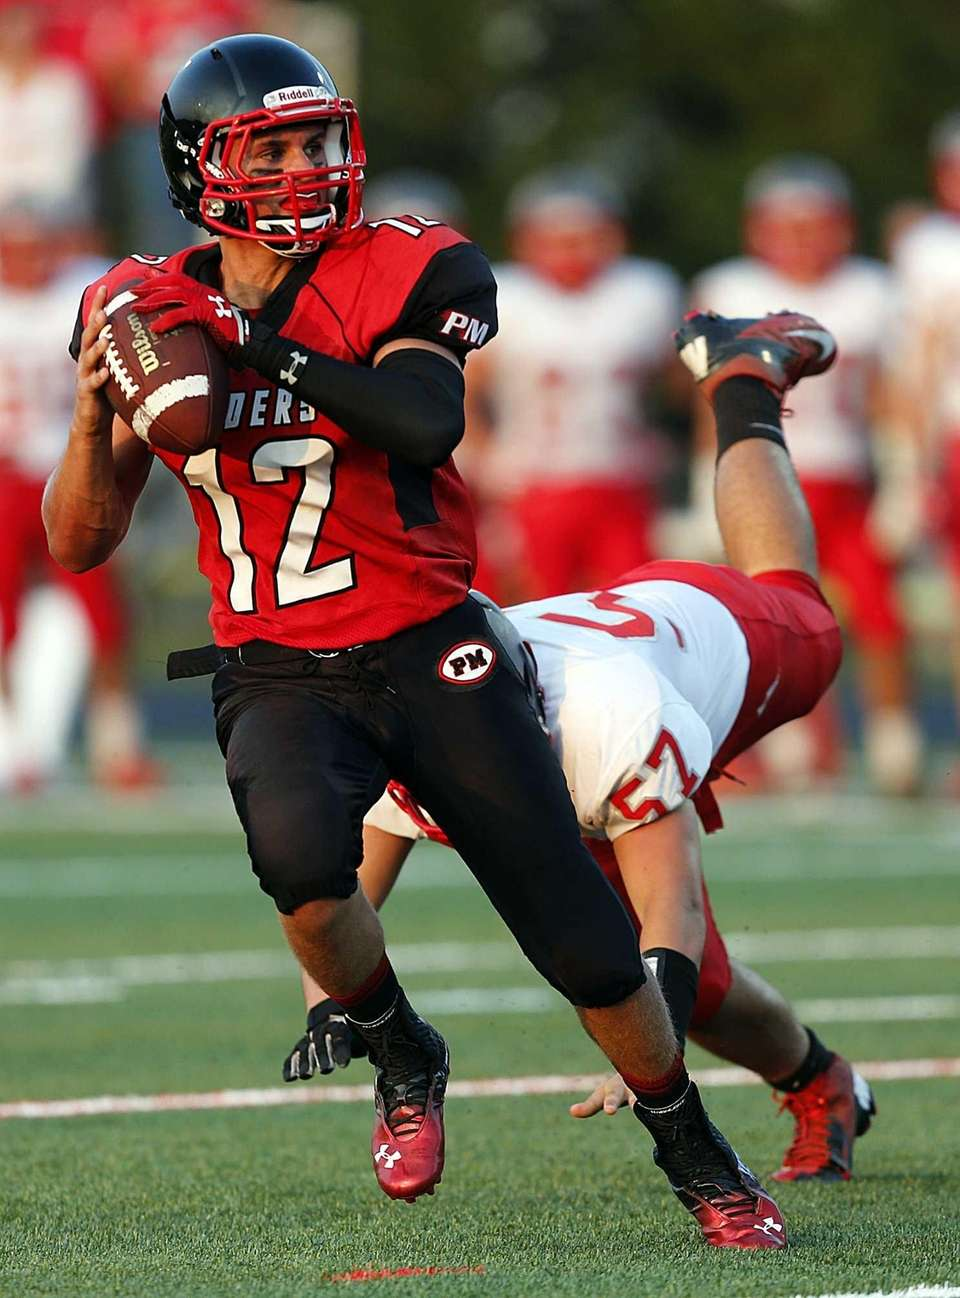 Patchogue-Medford quarterback Anthony Lee steps back to throw